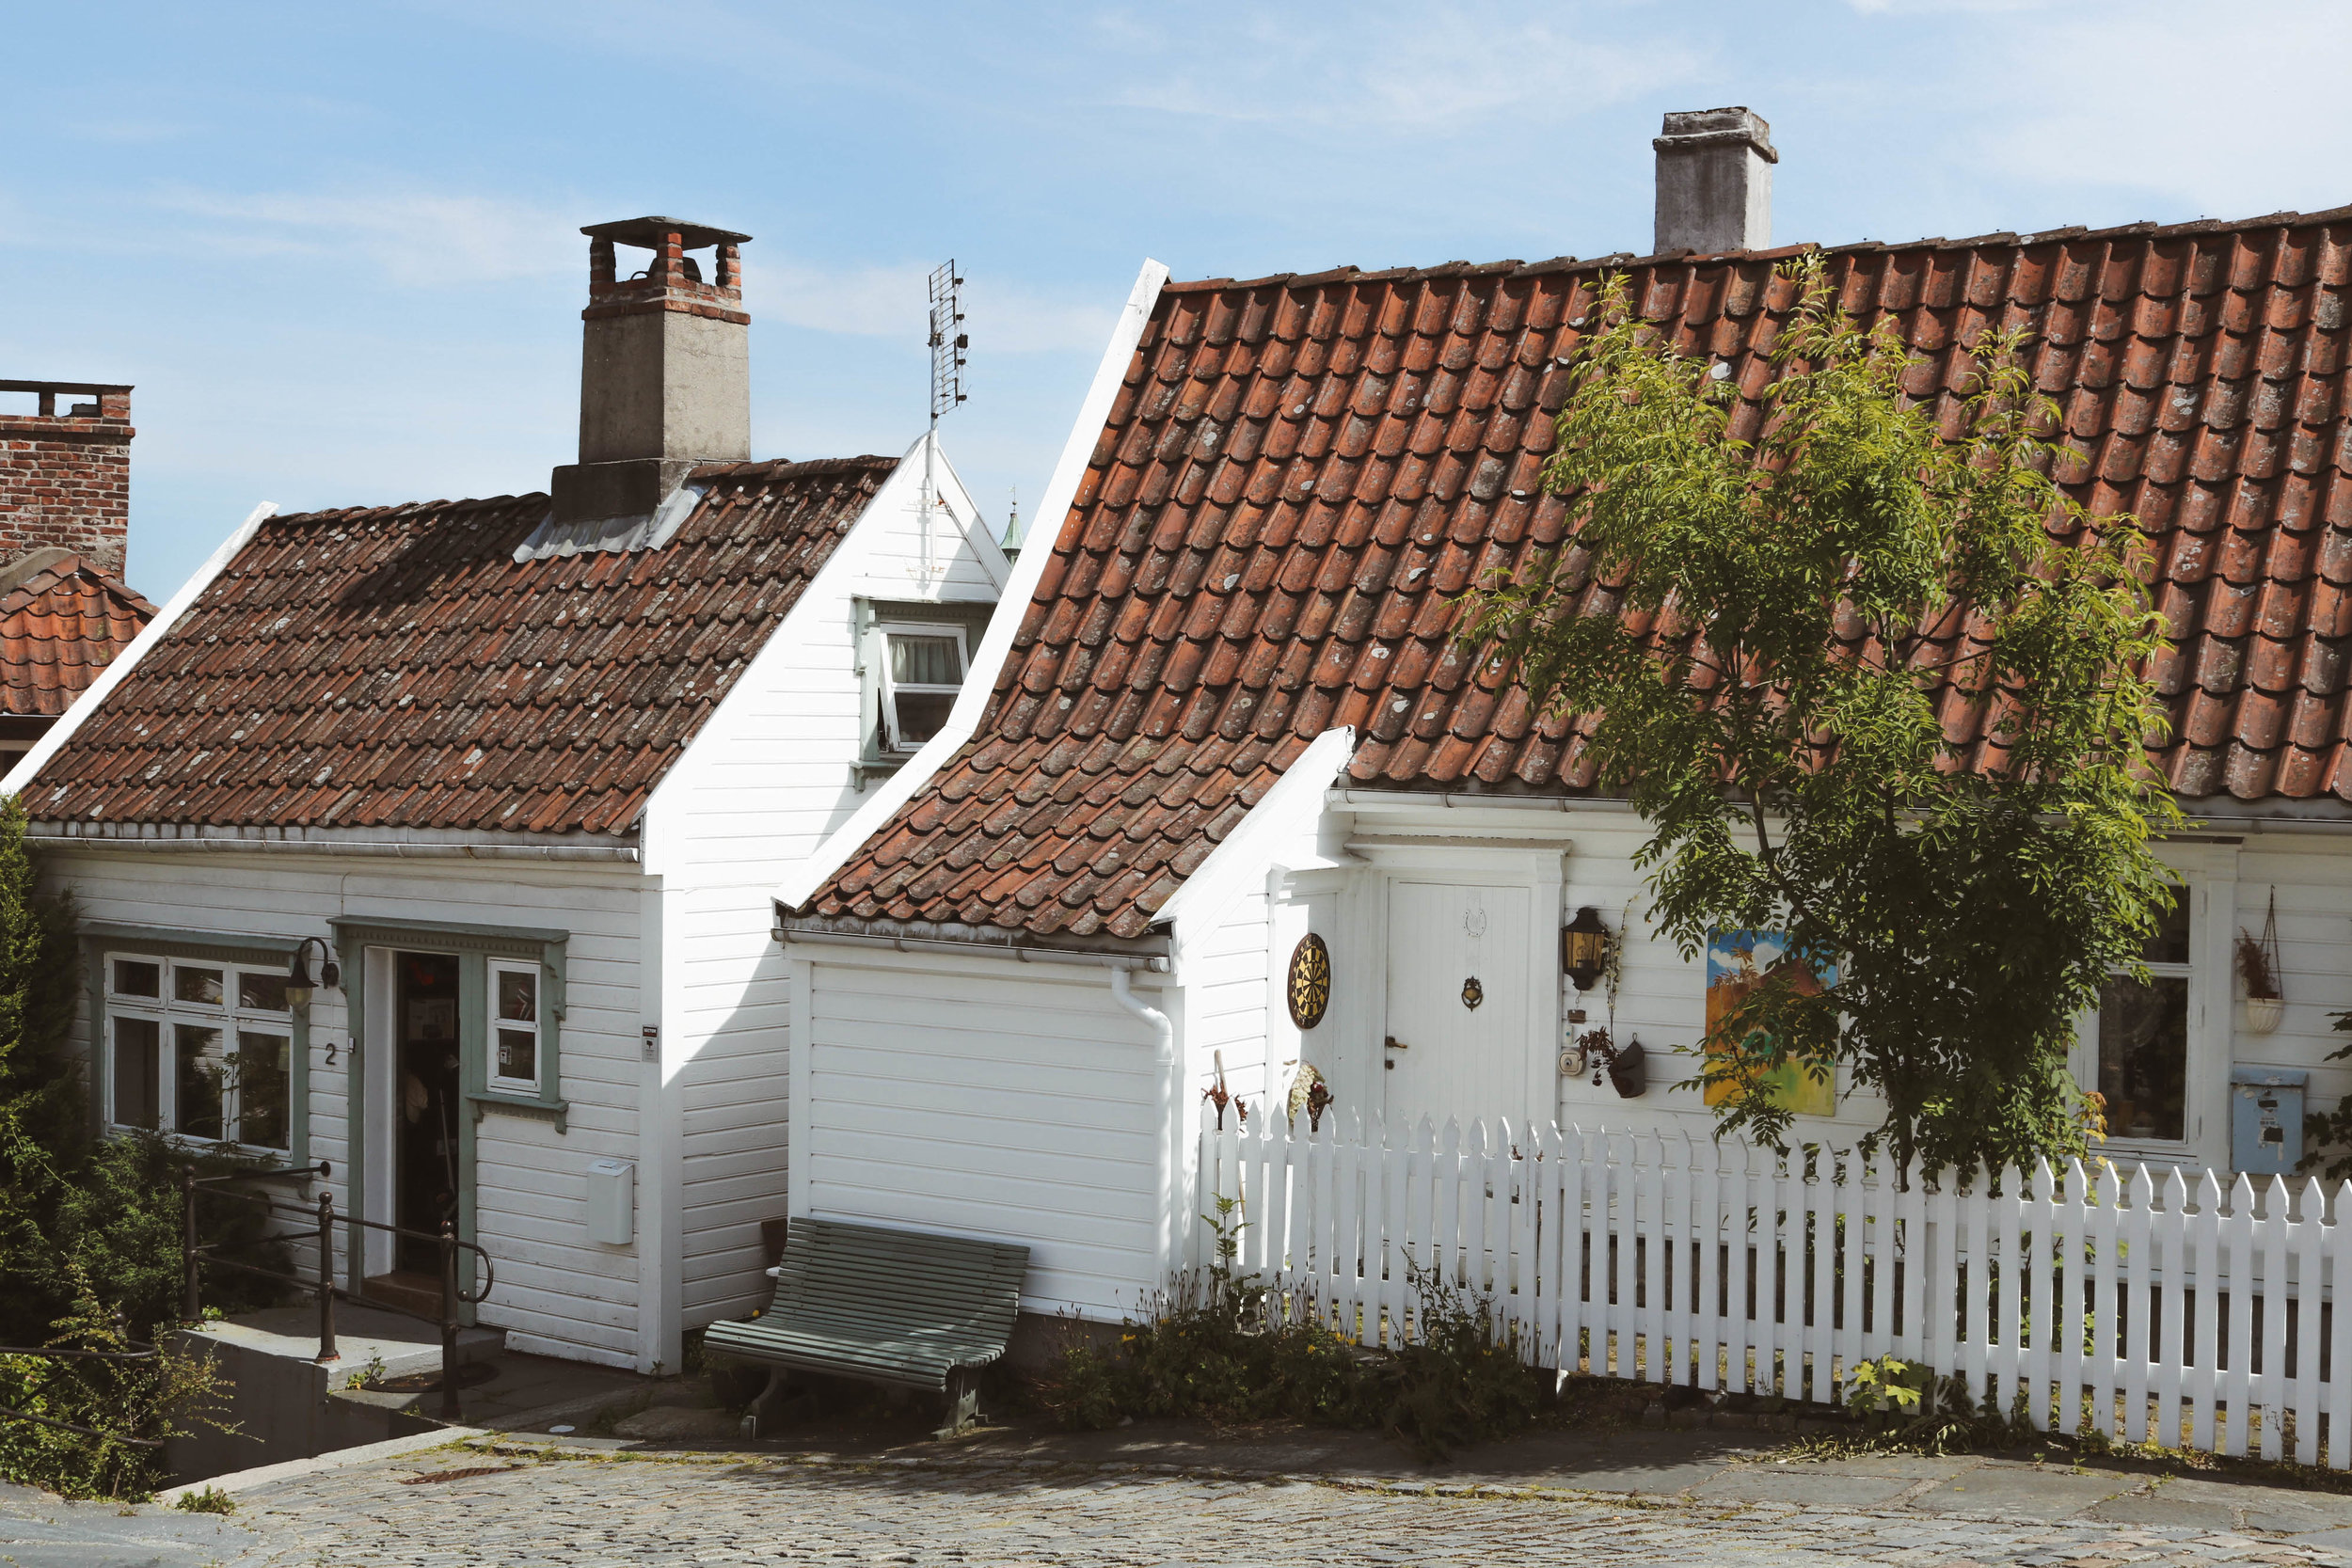 Stavanger's gorgeous old town